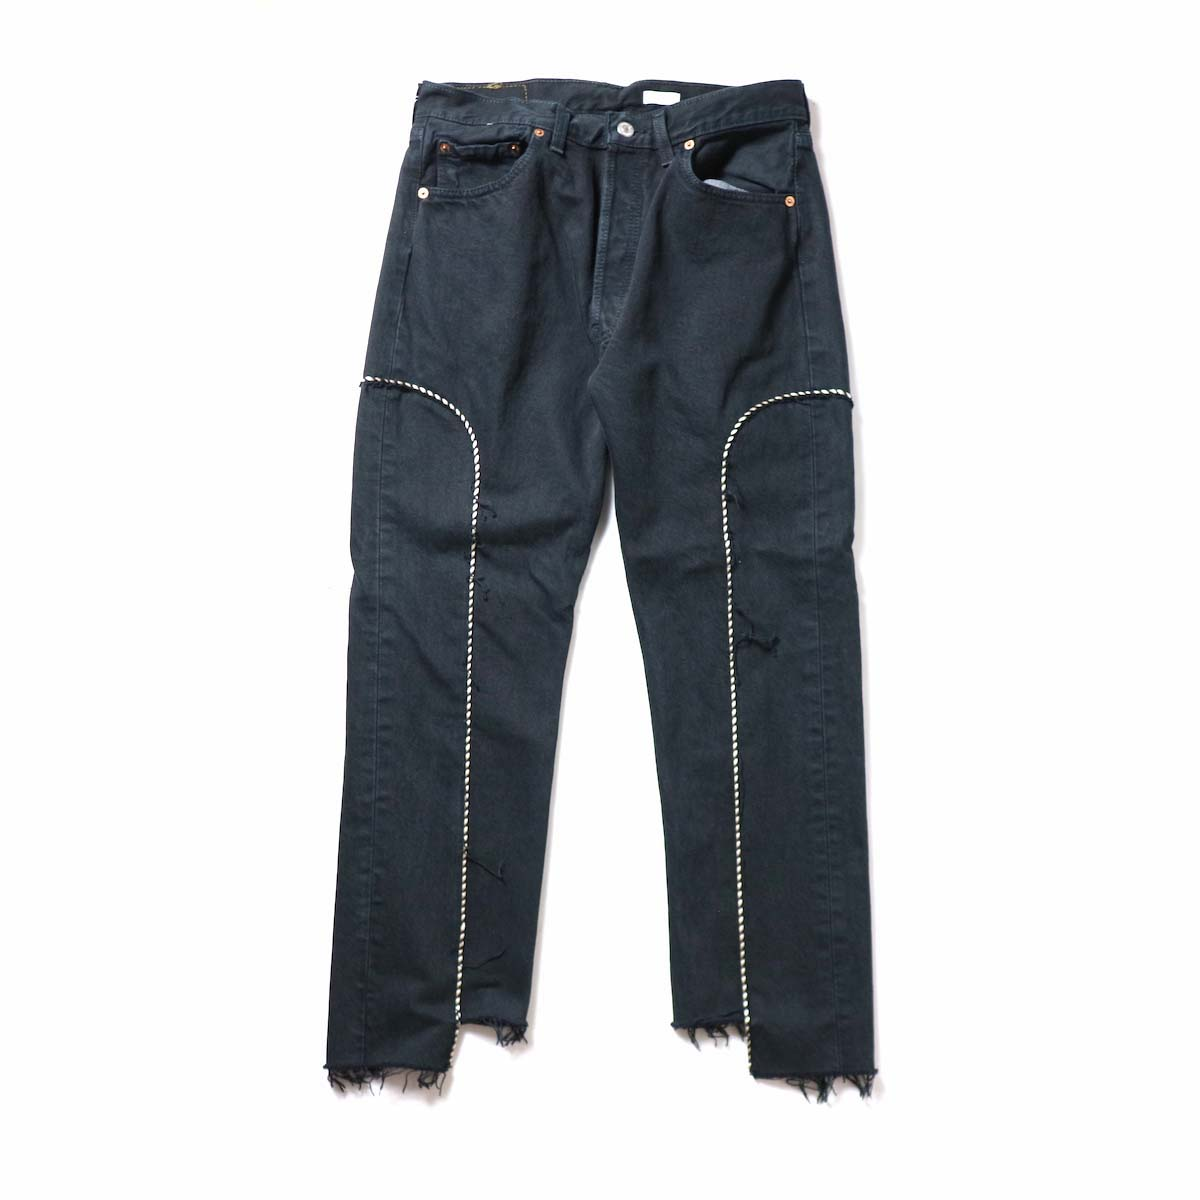 OLD PARK / Western Jeans Black (Msize-F)